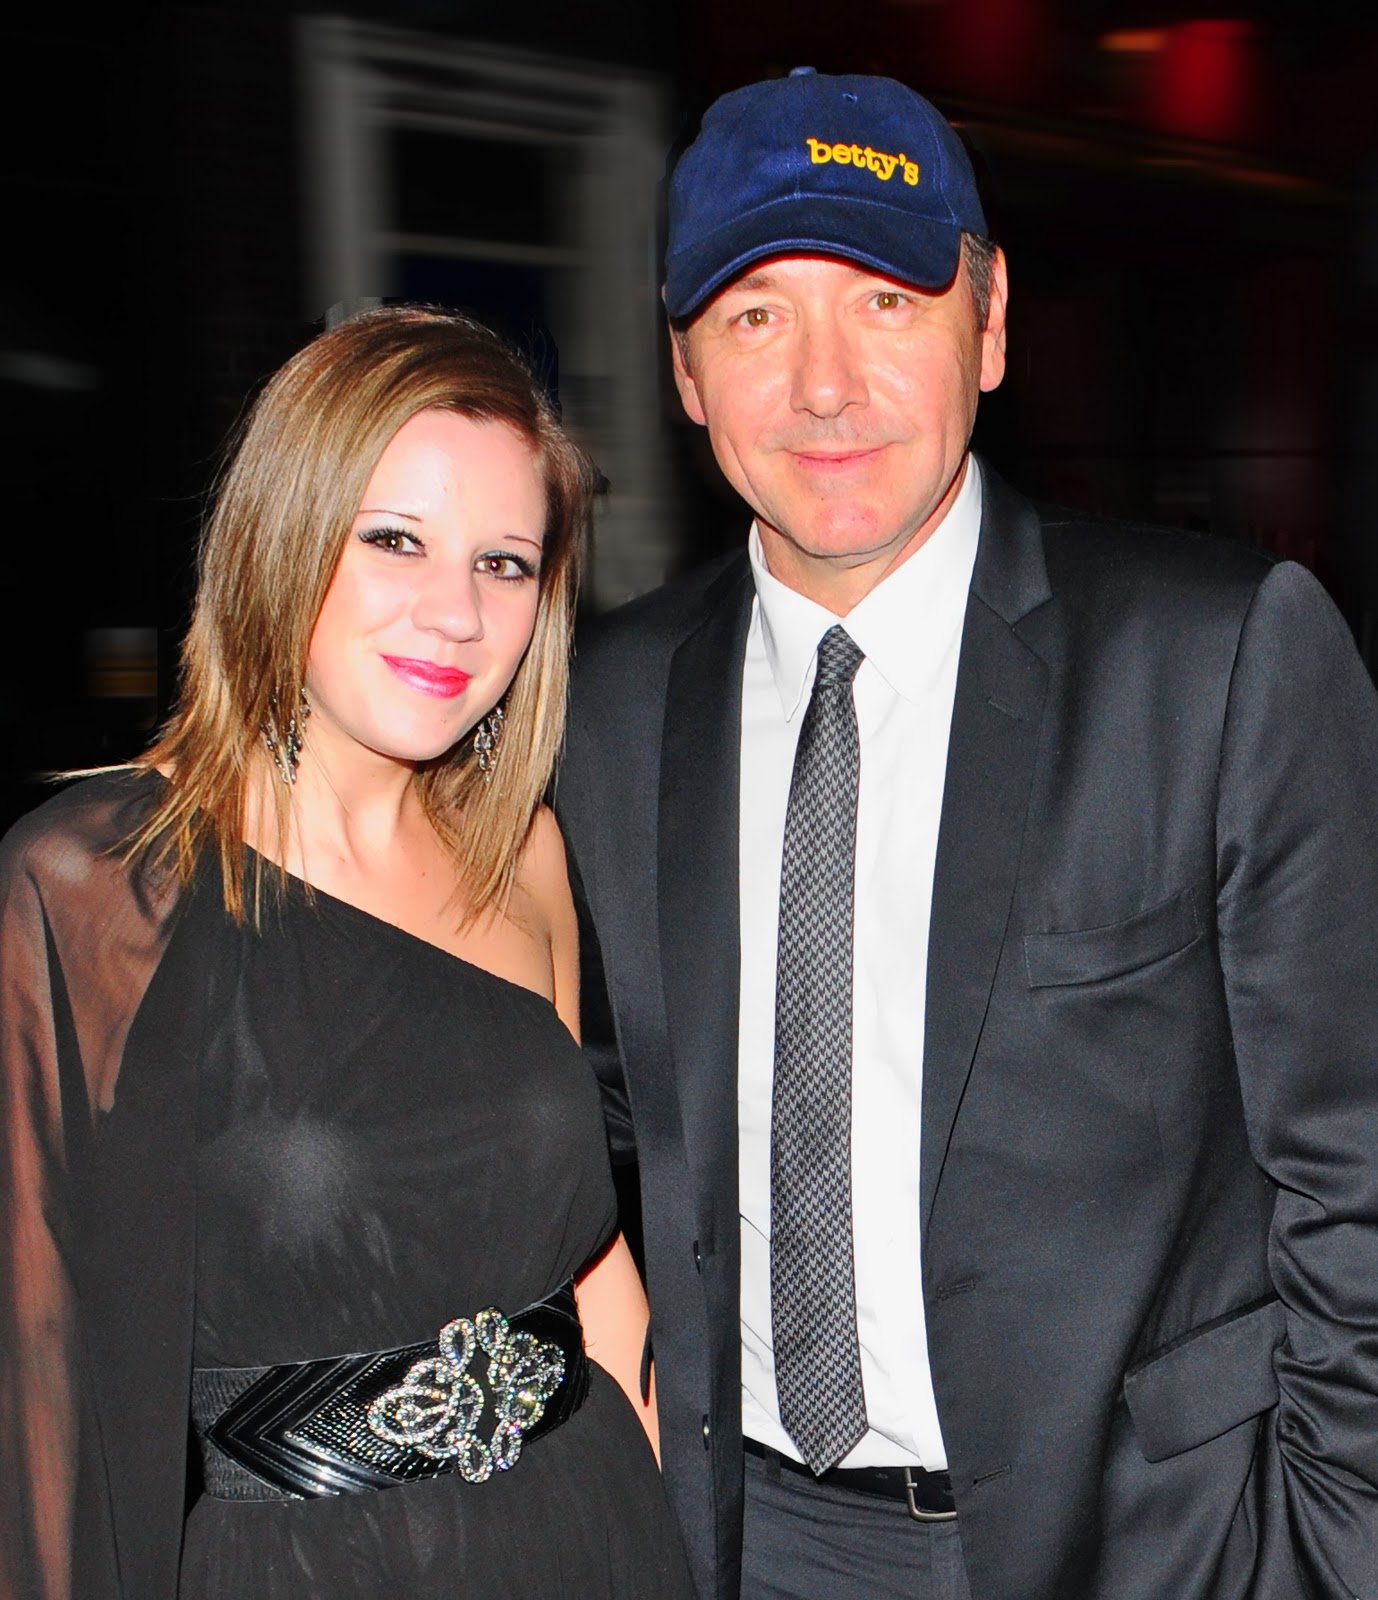 Kevin Spacey Married 2...